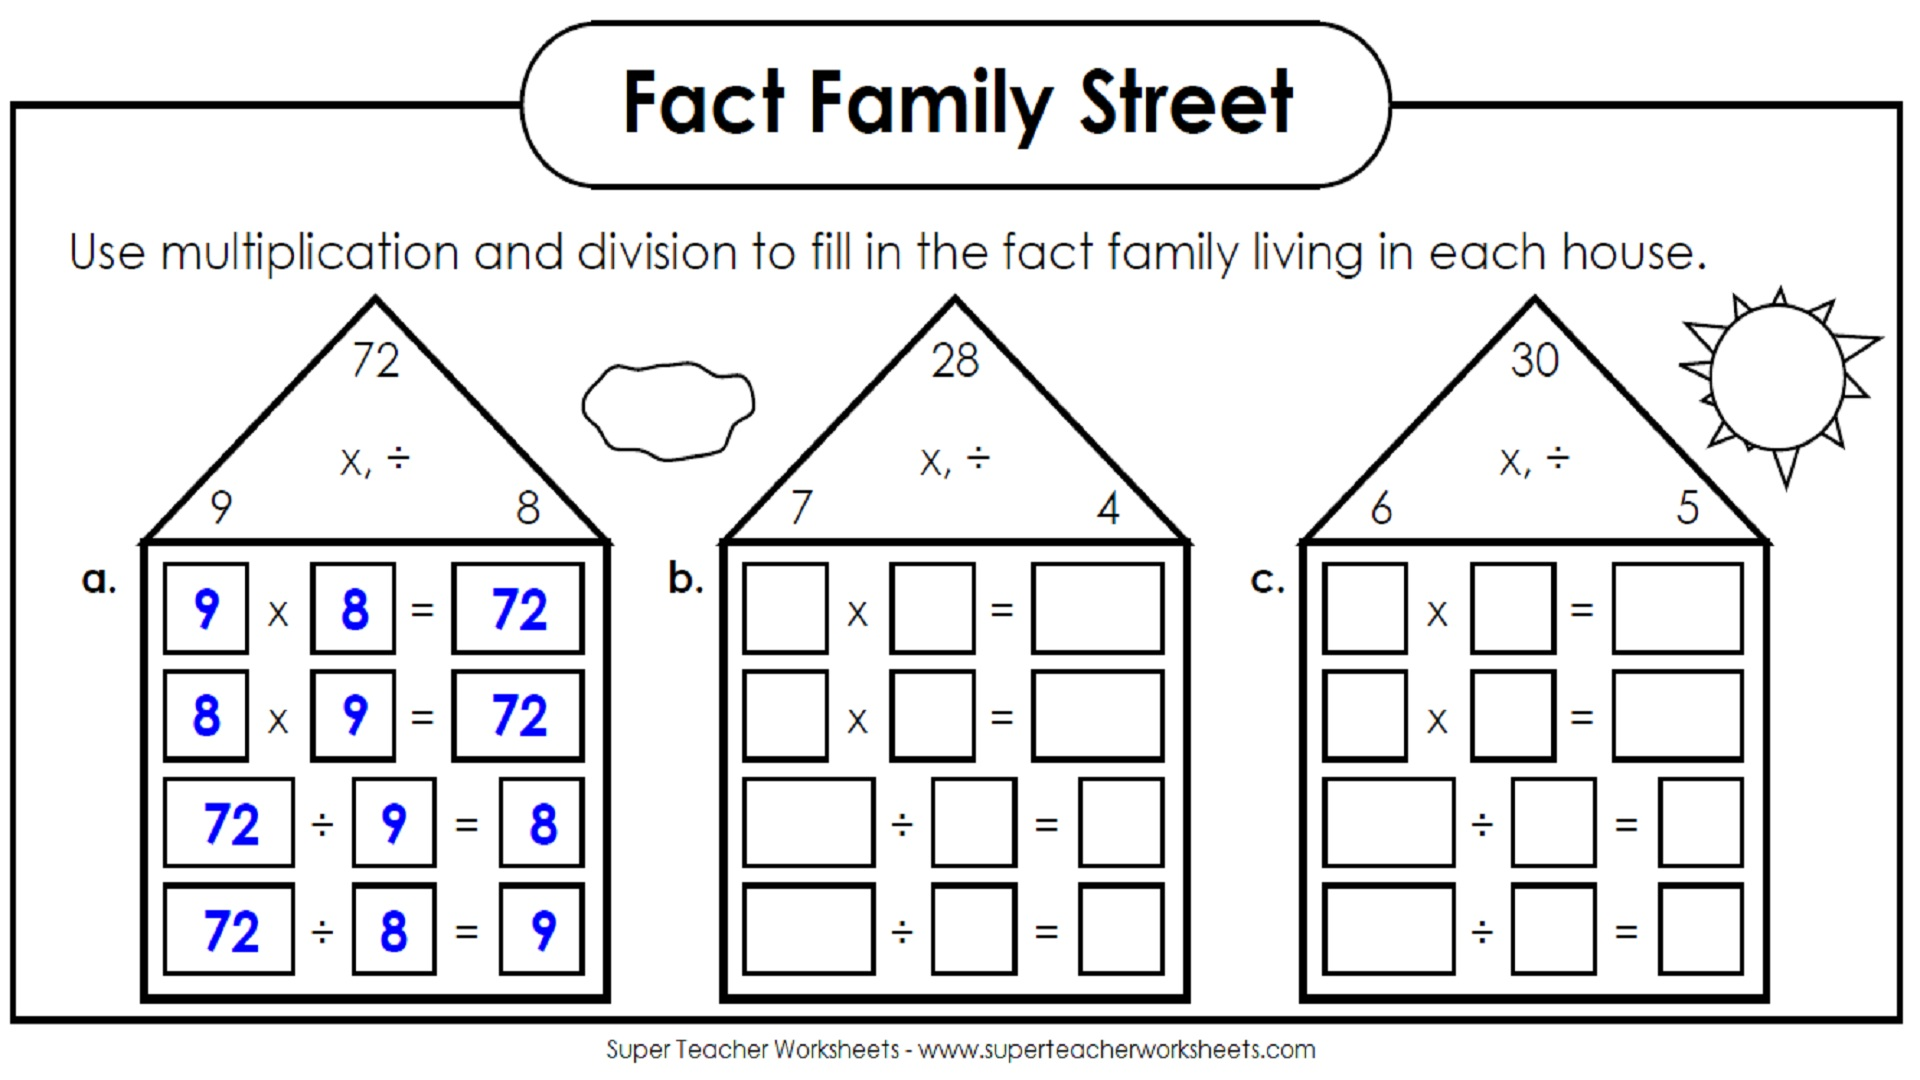 Multiplication and division facts live in families on this street ...